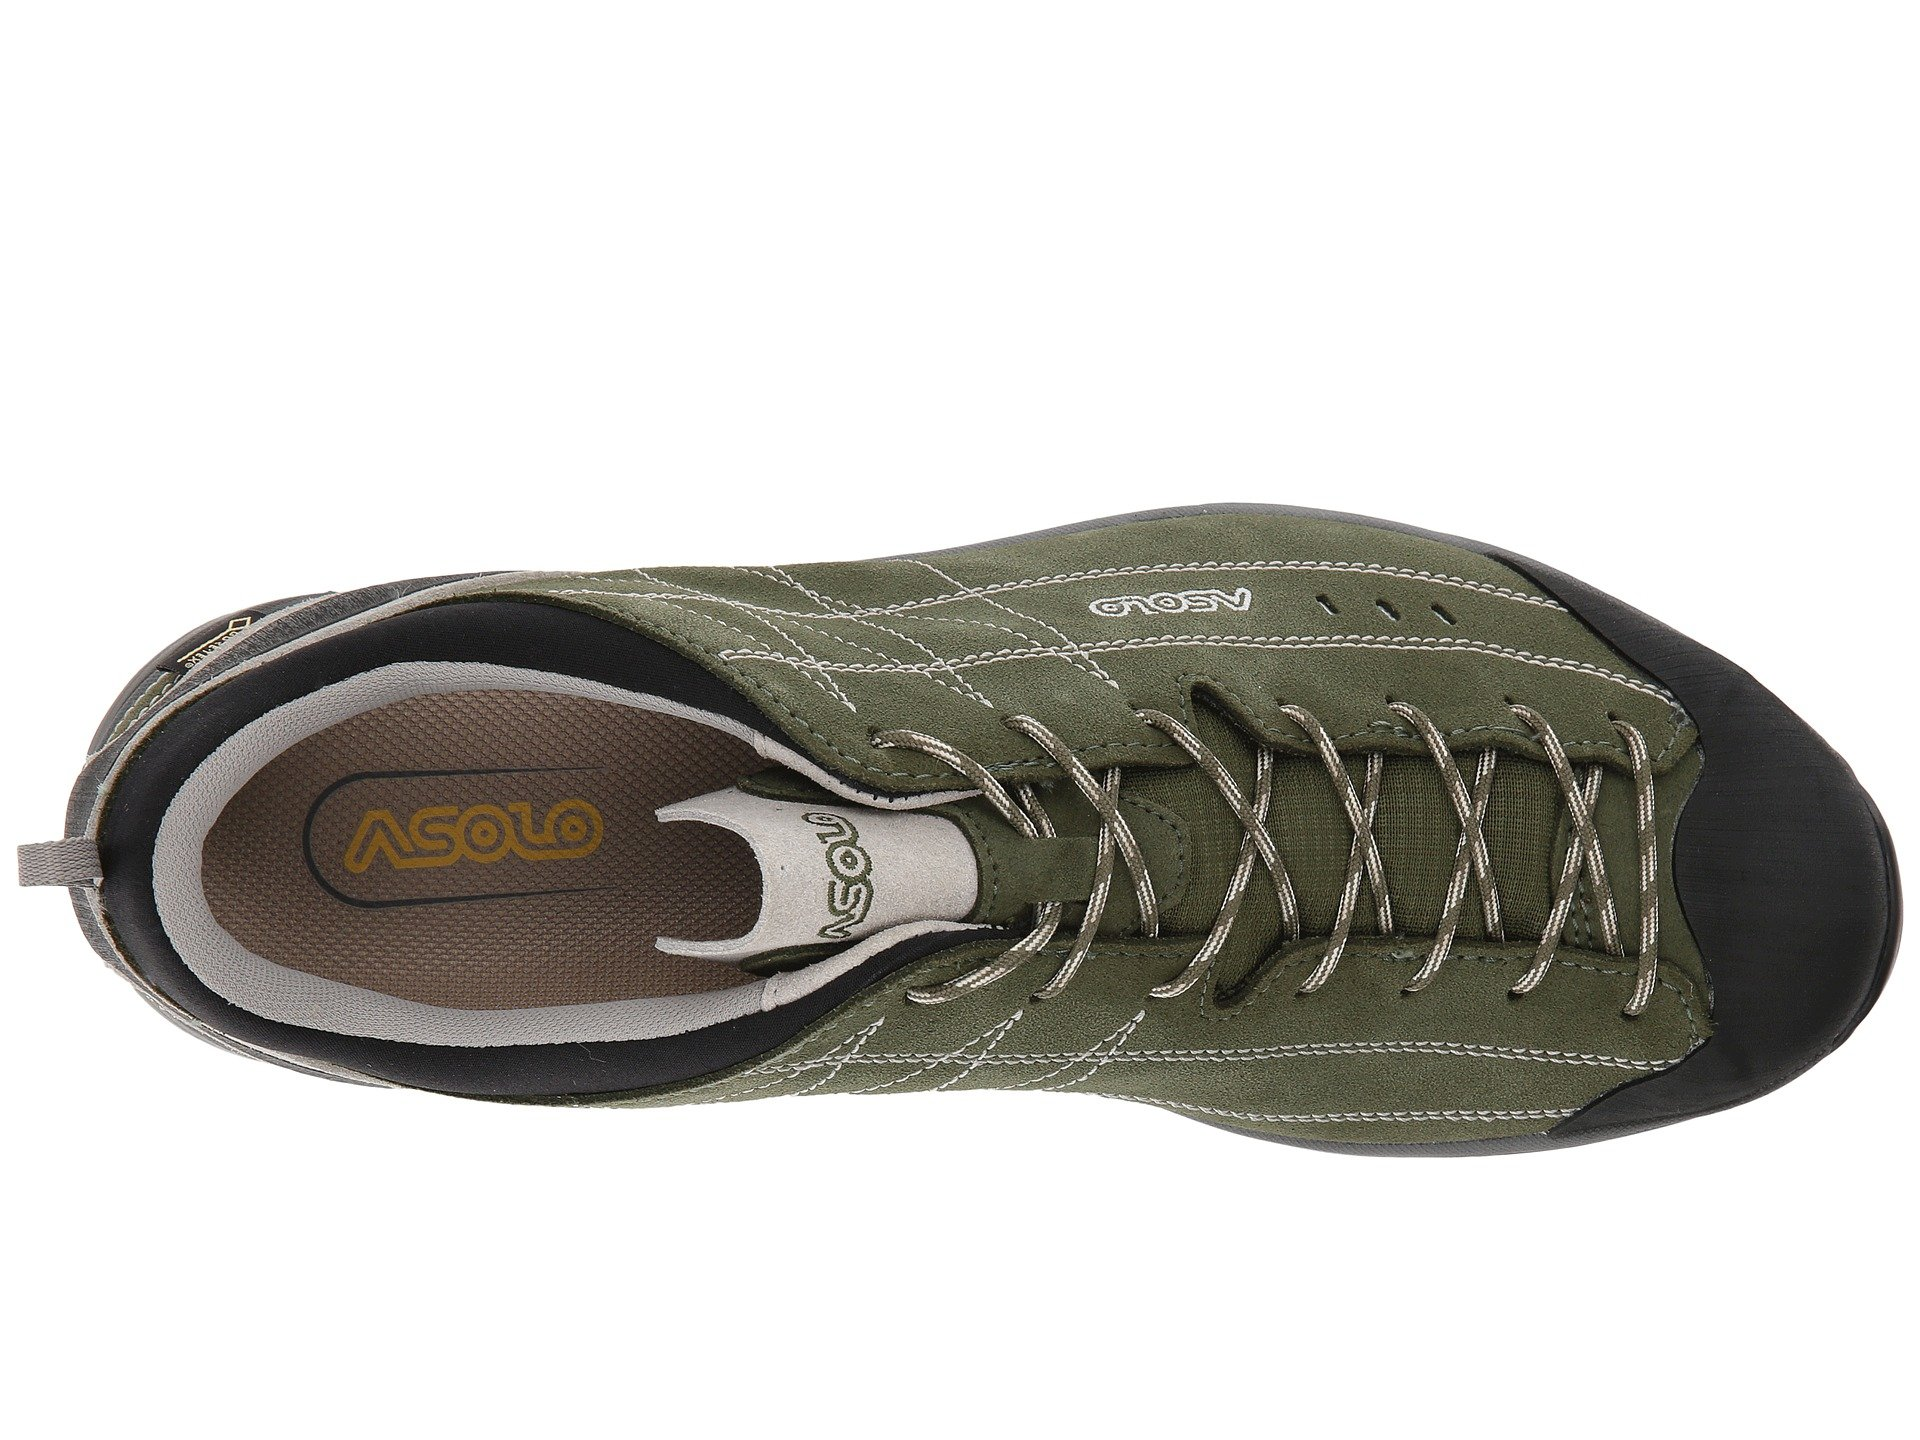 Fq55fwb Asolo Silver Sneakers Gv Nucleon Green Shoes Rifle Amp; Athletic rxWBoedC